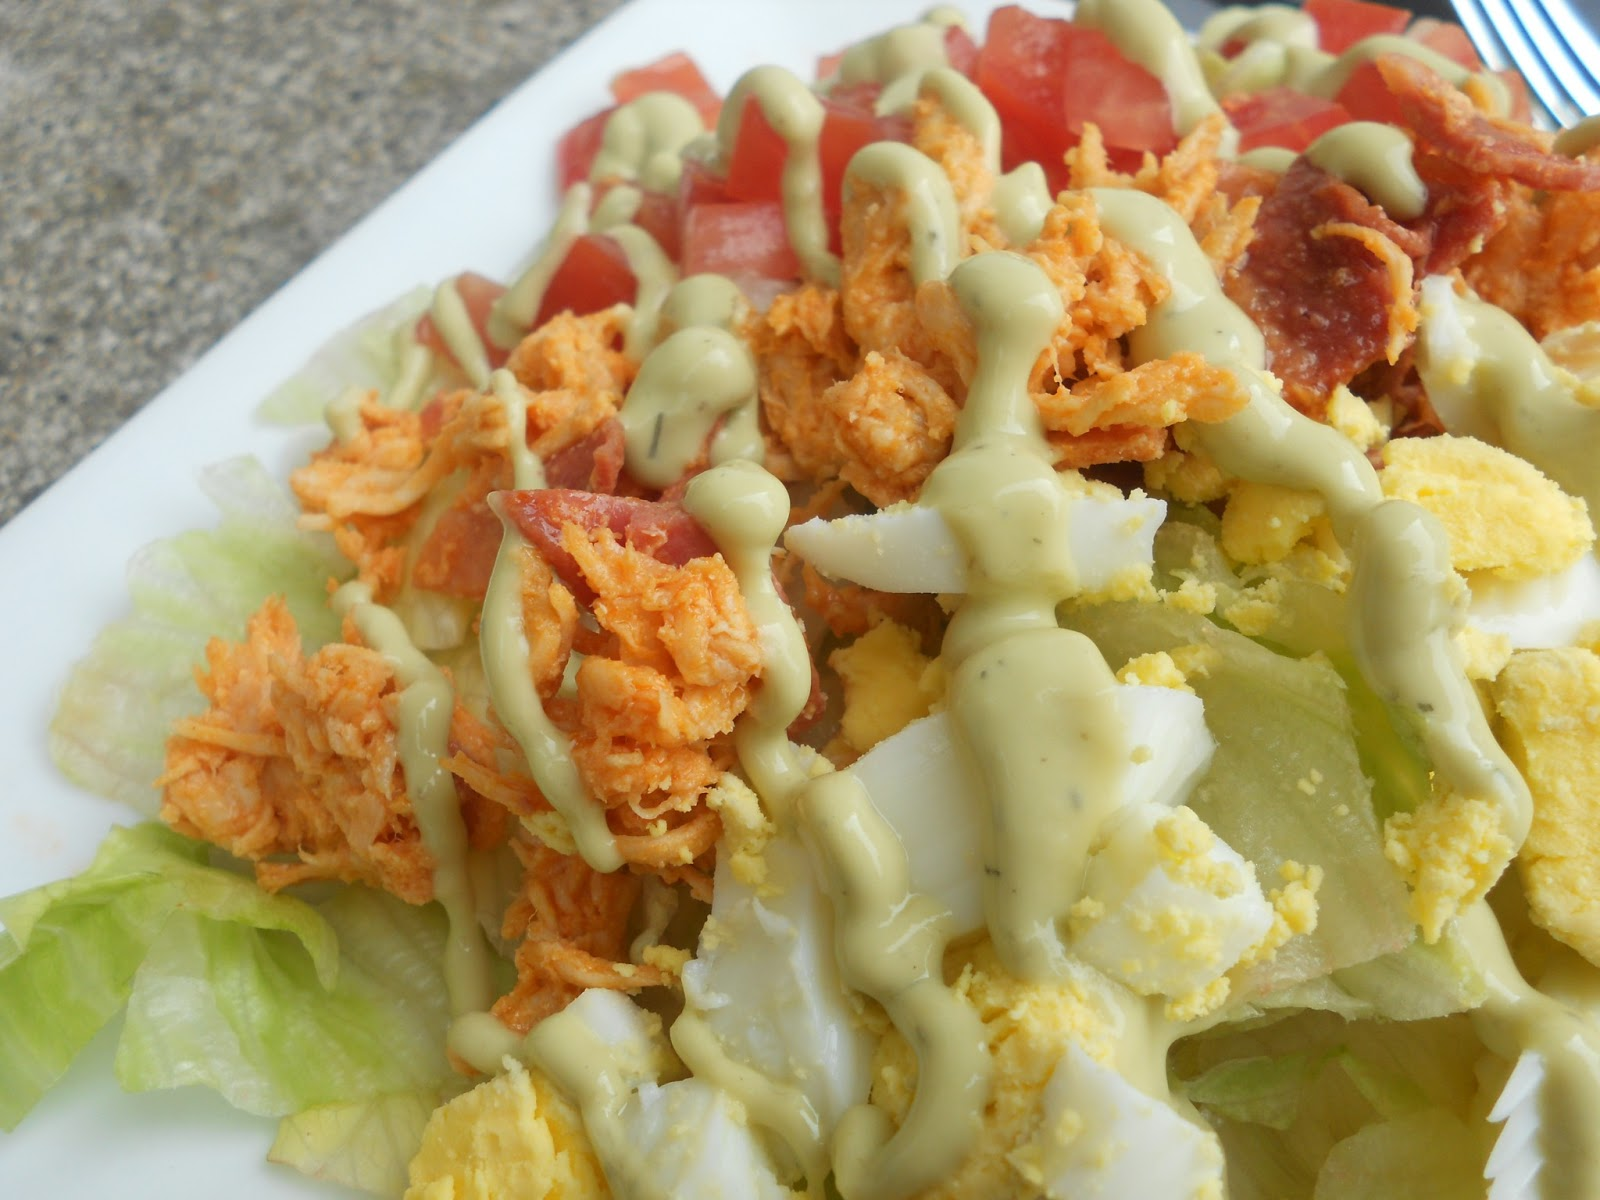 ... Savory Eats: Buffalo Chicken Cobb Salad with Creamy Avocado Dressing